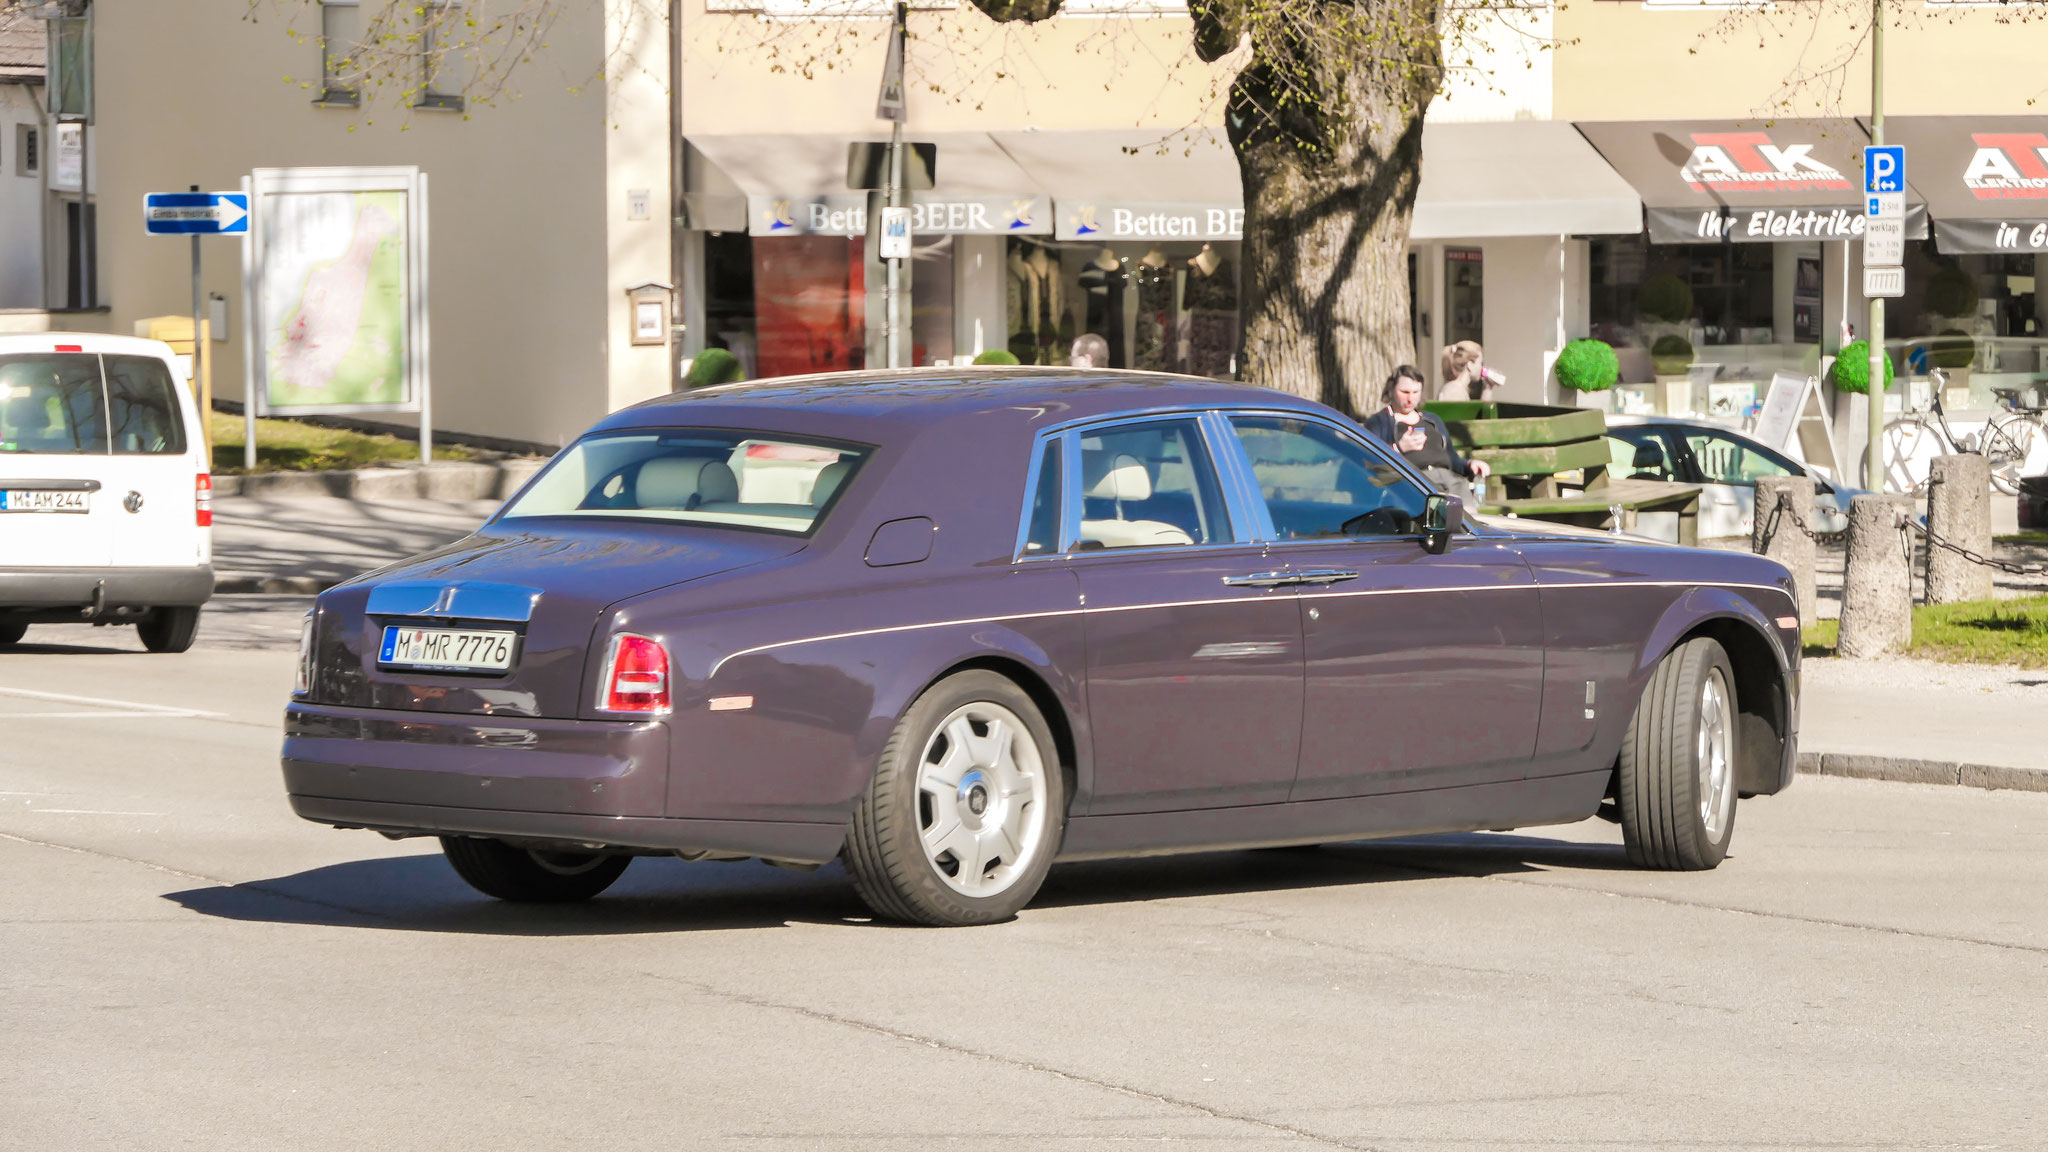 Rolls Royce Phantom - M-MR-7776